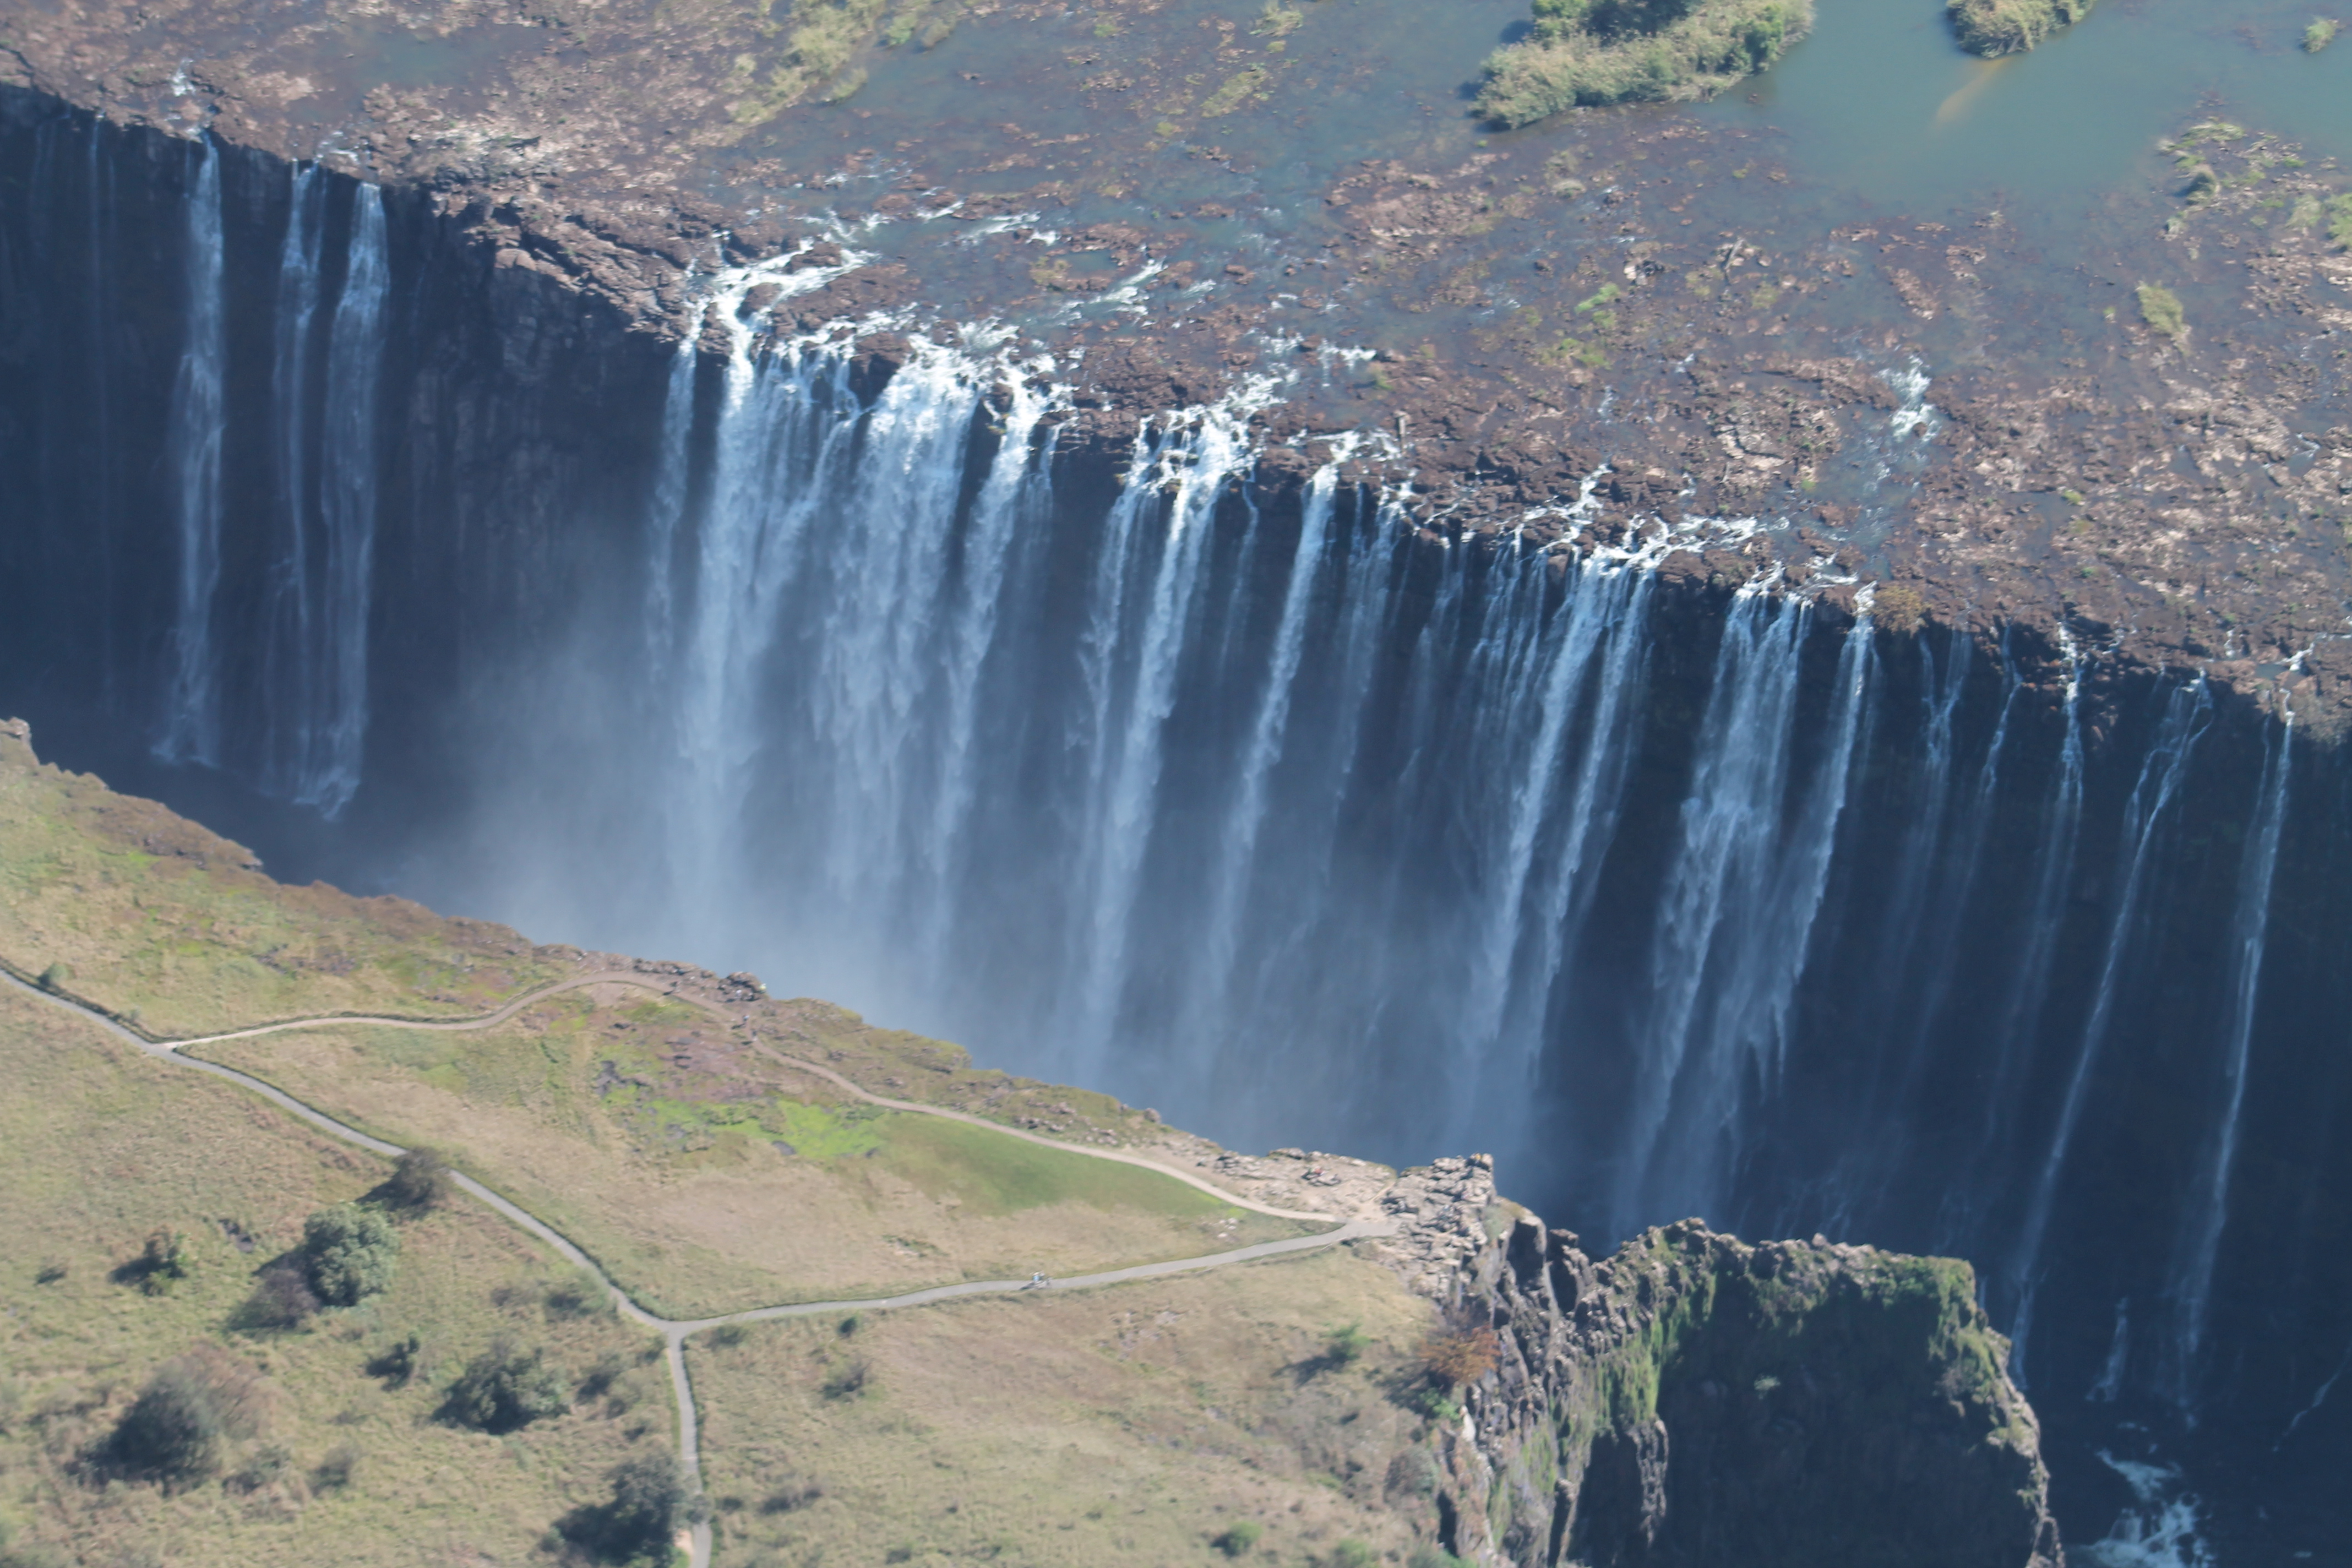 Africa Pictures 2 647.jpg